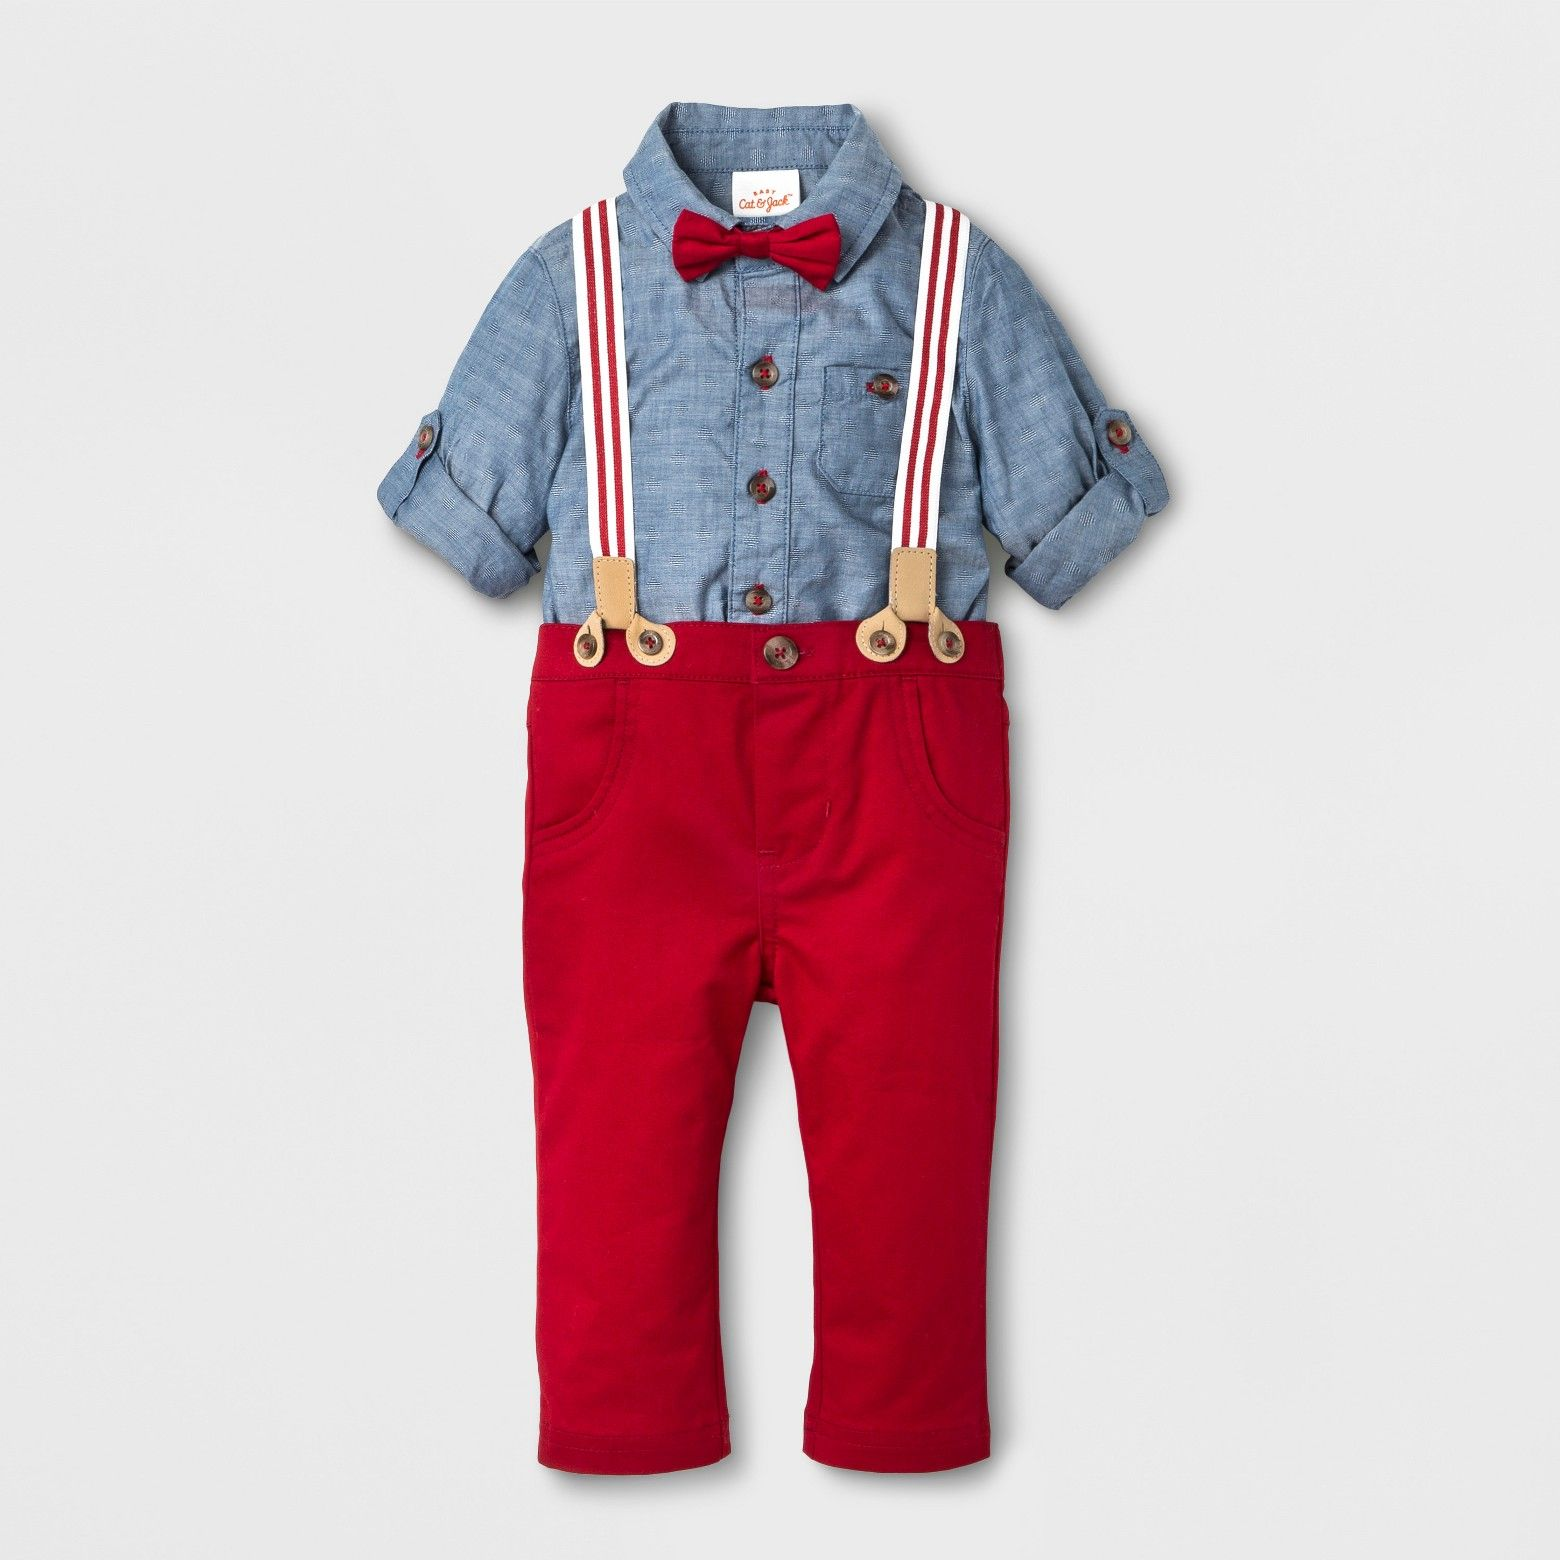 Baby Boys 2 Piece Jacquard Shirt Bowtie and Pants with Suspenders